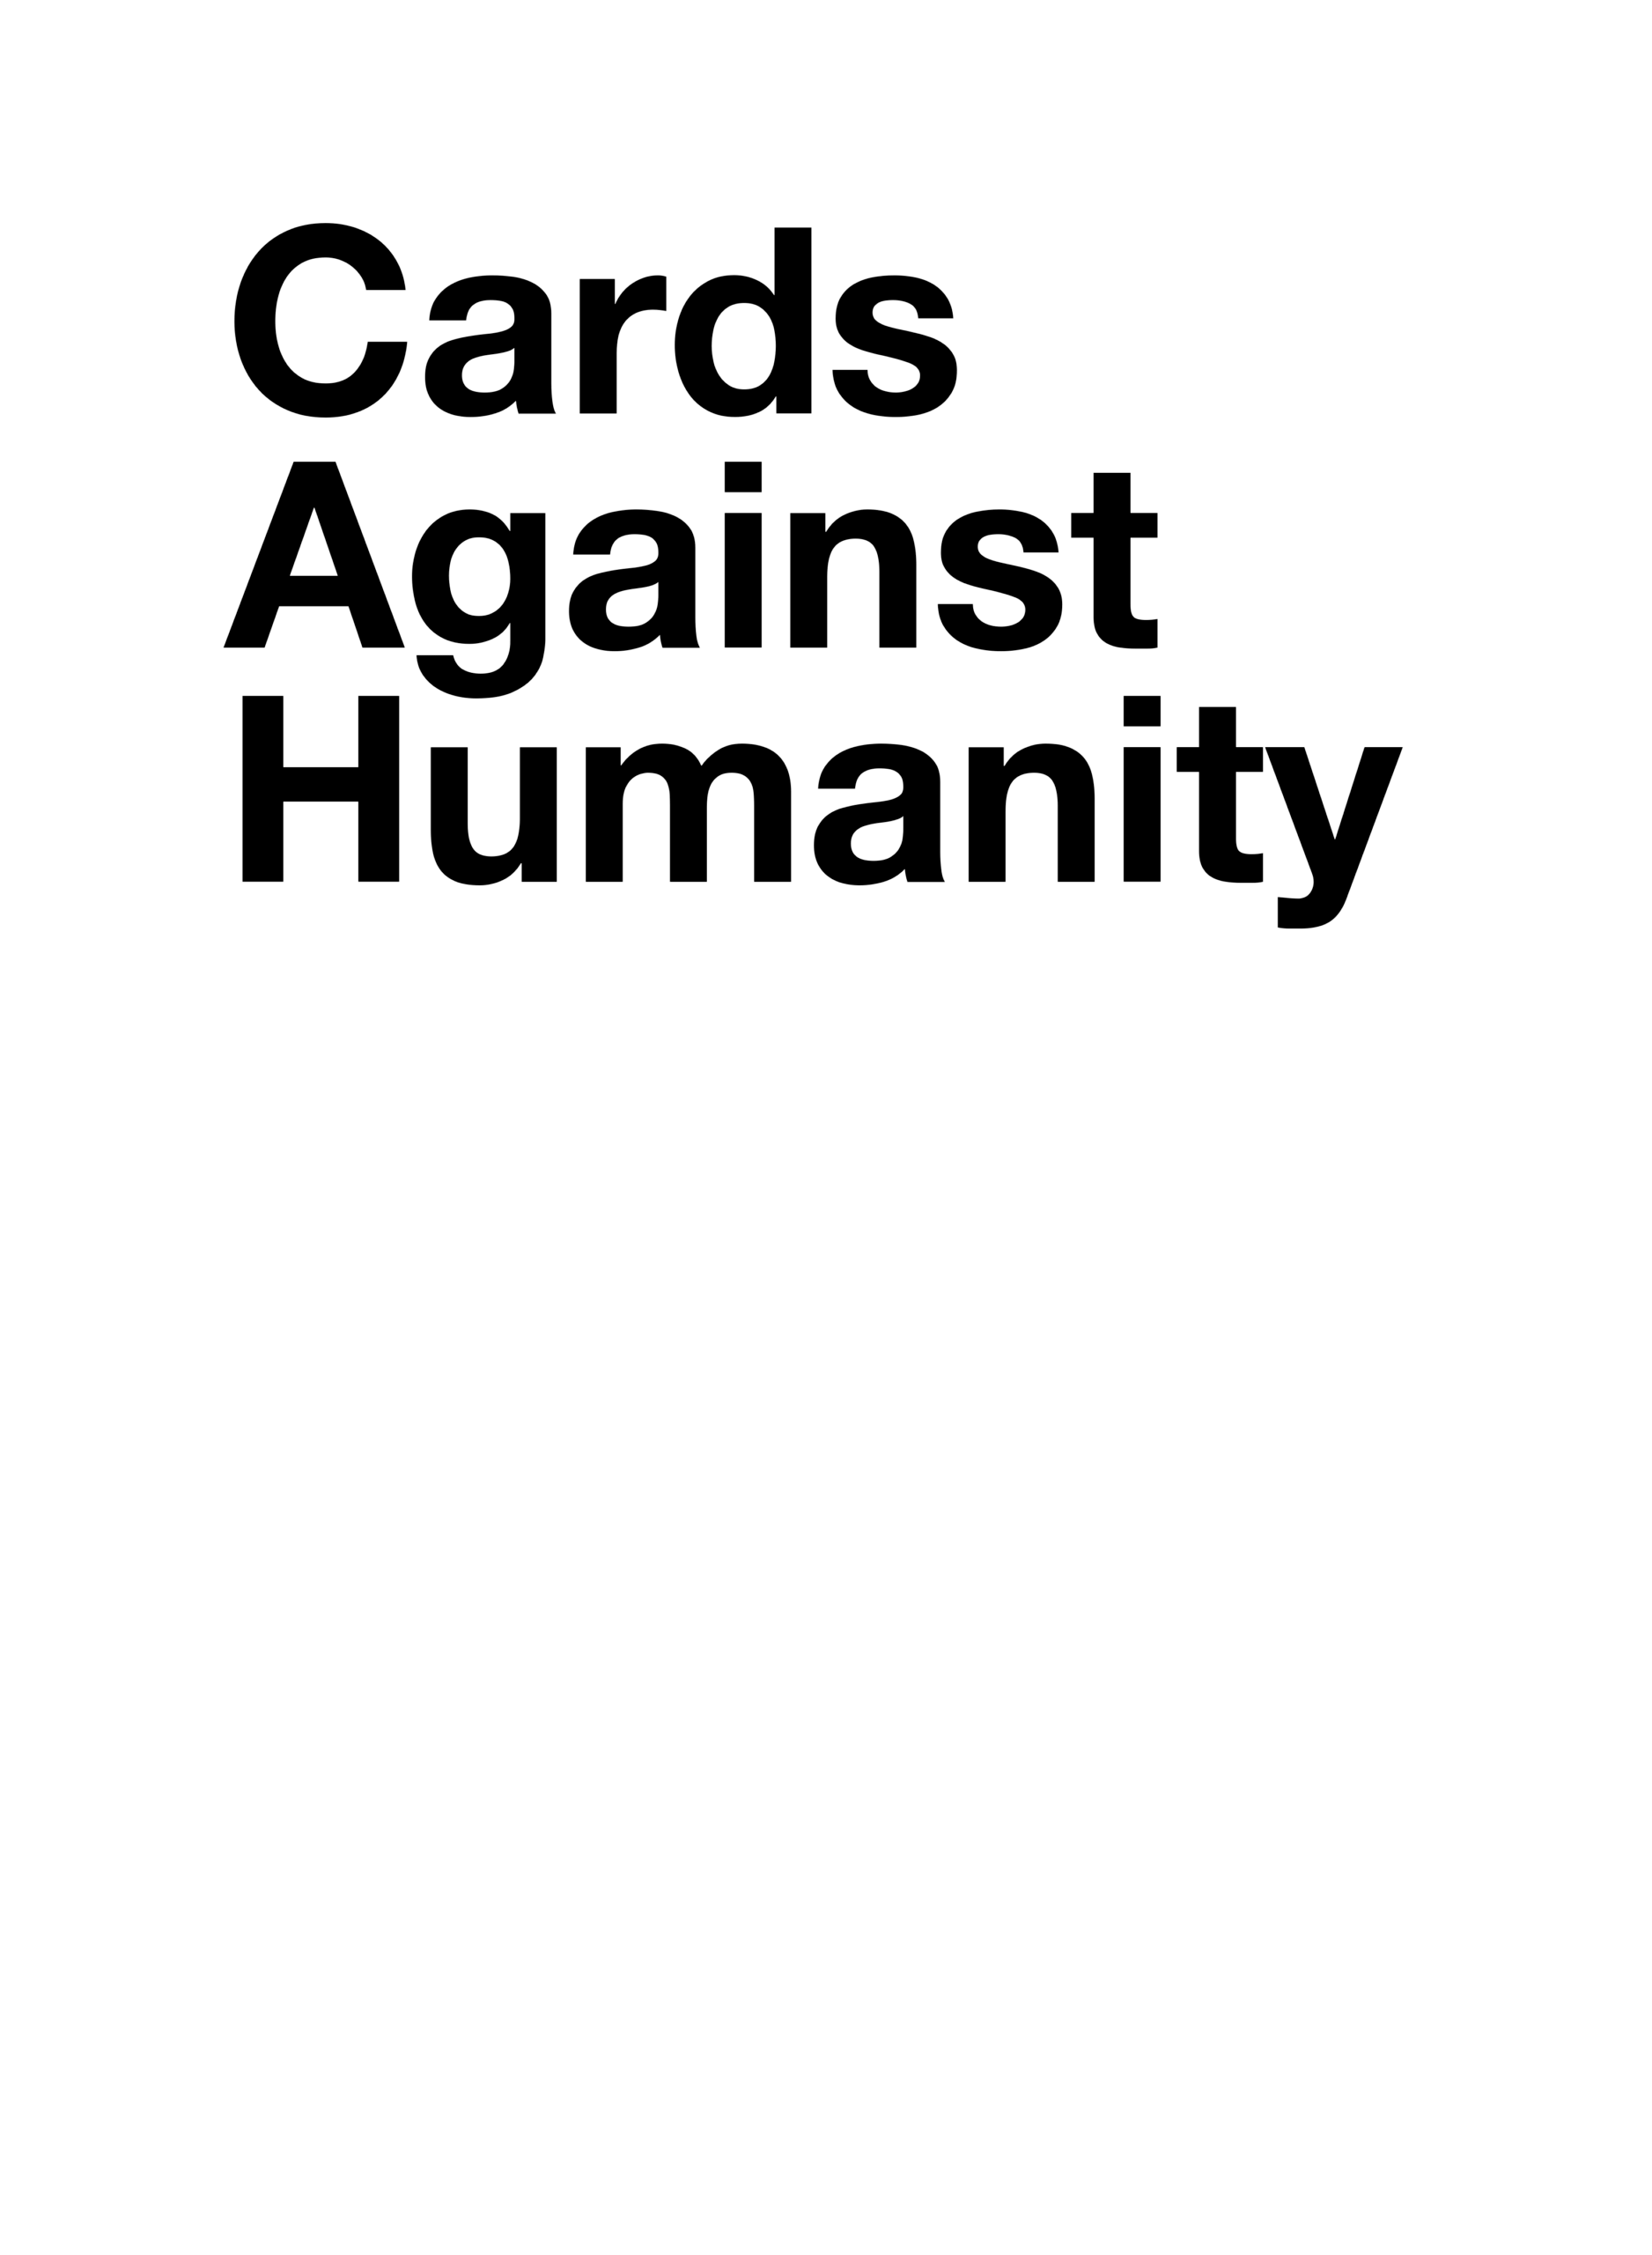 Cards Against Humanity - Card Generator For Cards Against Humanity Template